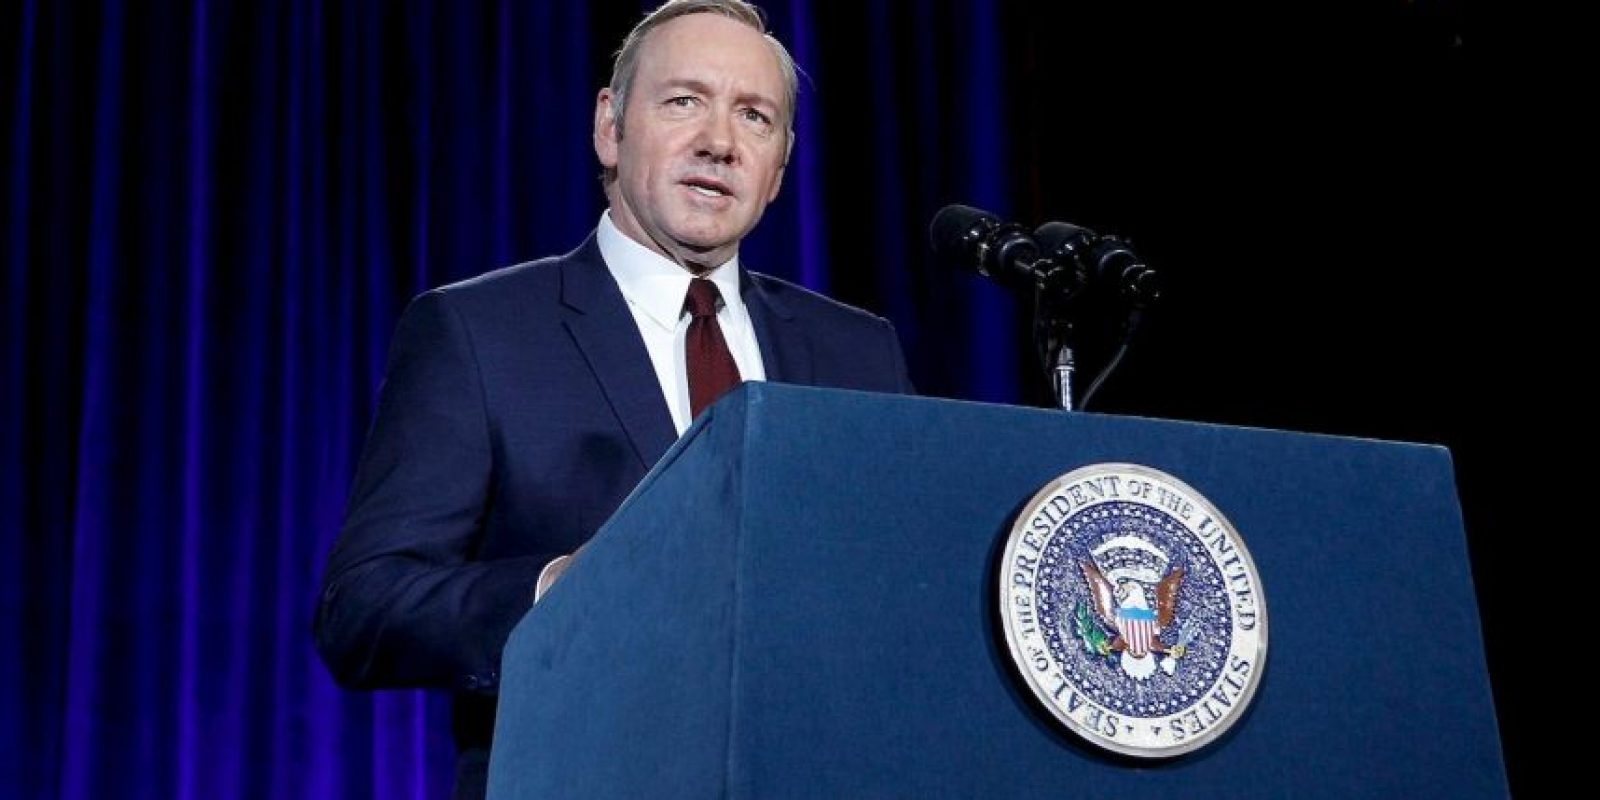 El propio actor Kevin Spacey acudió a la develación del retrato, caracterizado como Frank Underwood Foto: House of Cards